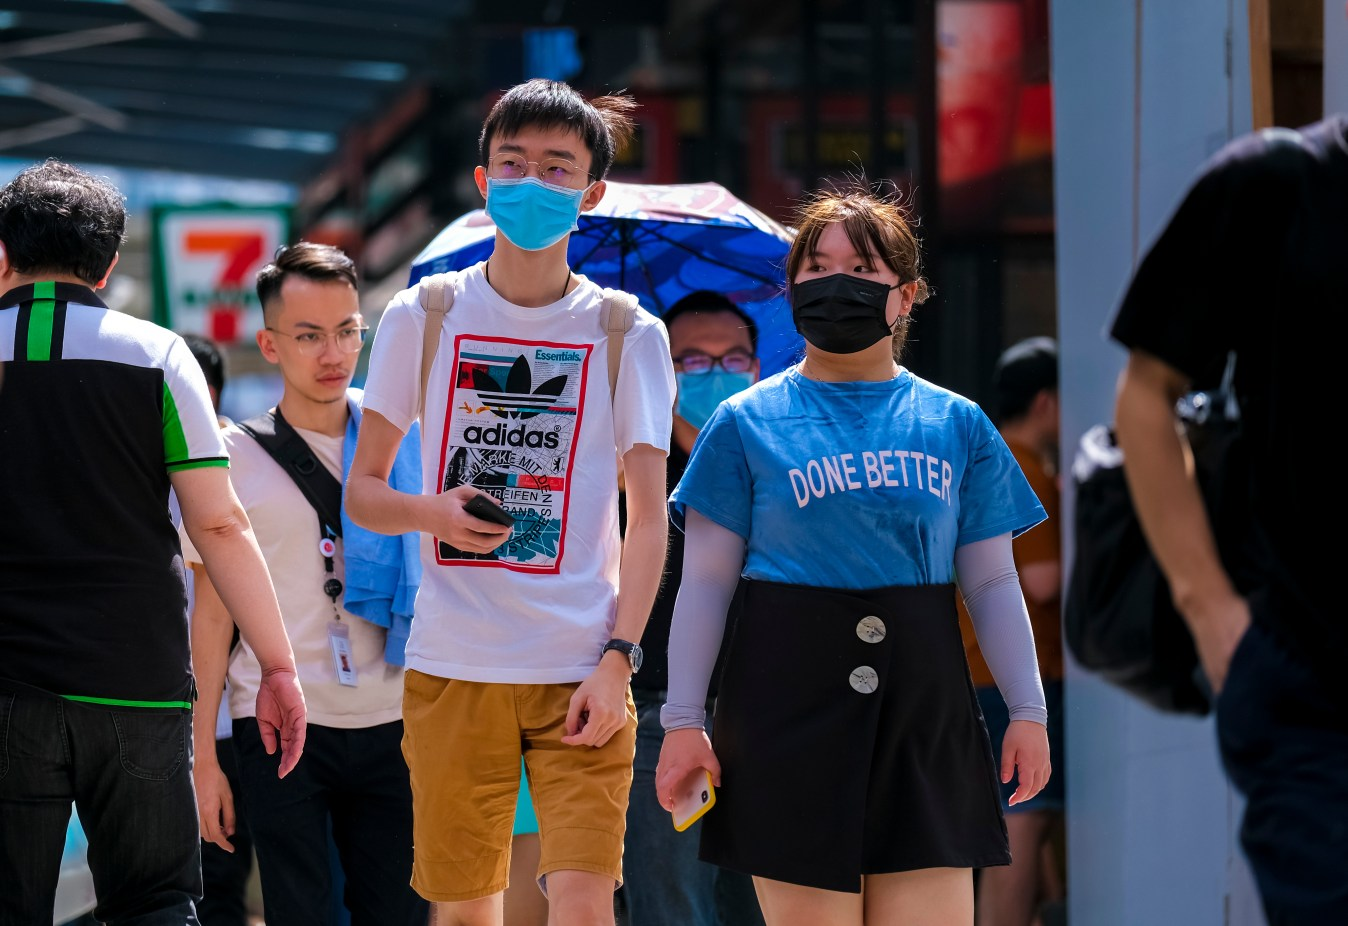 People wearing face coverings to protect against COVID. Concept. KUALA LUMPUR, MALAYSIA - FEBRUARY 22, 2020 : People wearing face mask to prevent infection of virus at Bukit Bintang. Bukit Bintang is a famous tourist attraction place. Image credit: Abdul Razak Latif / 123rf.